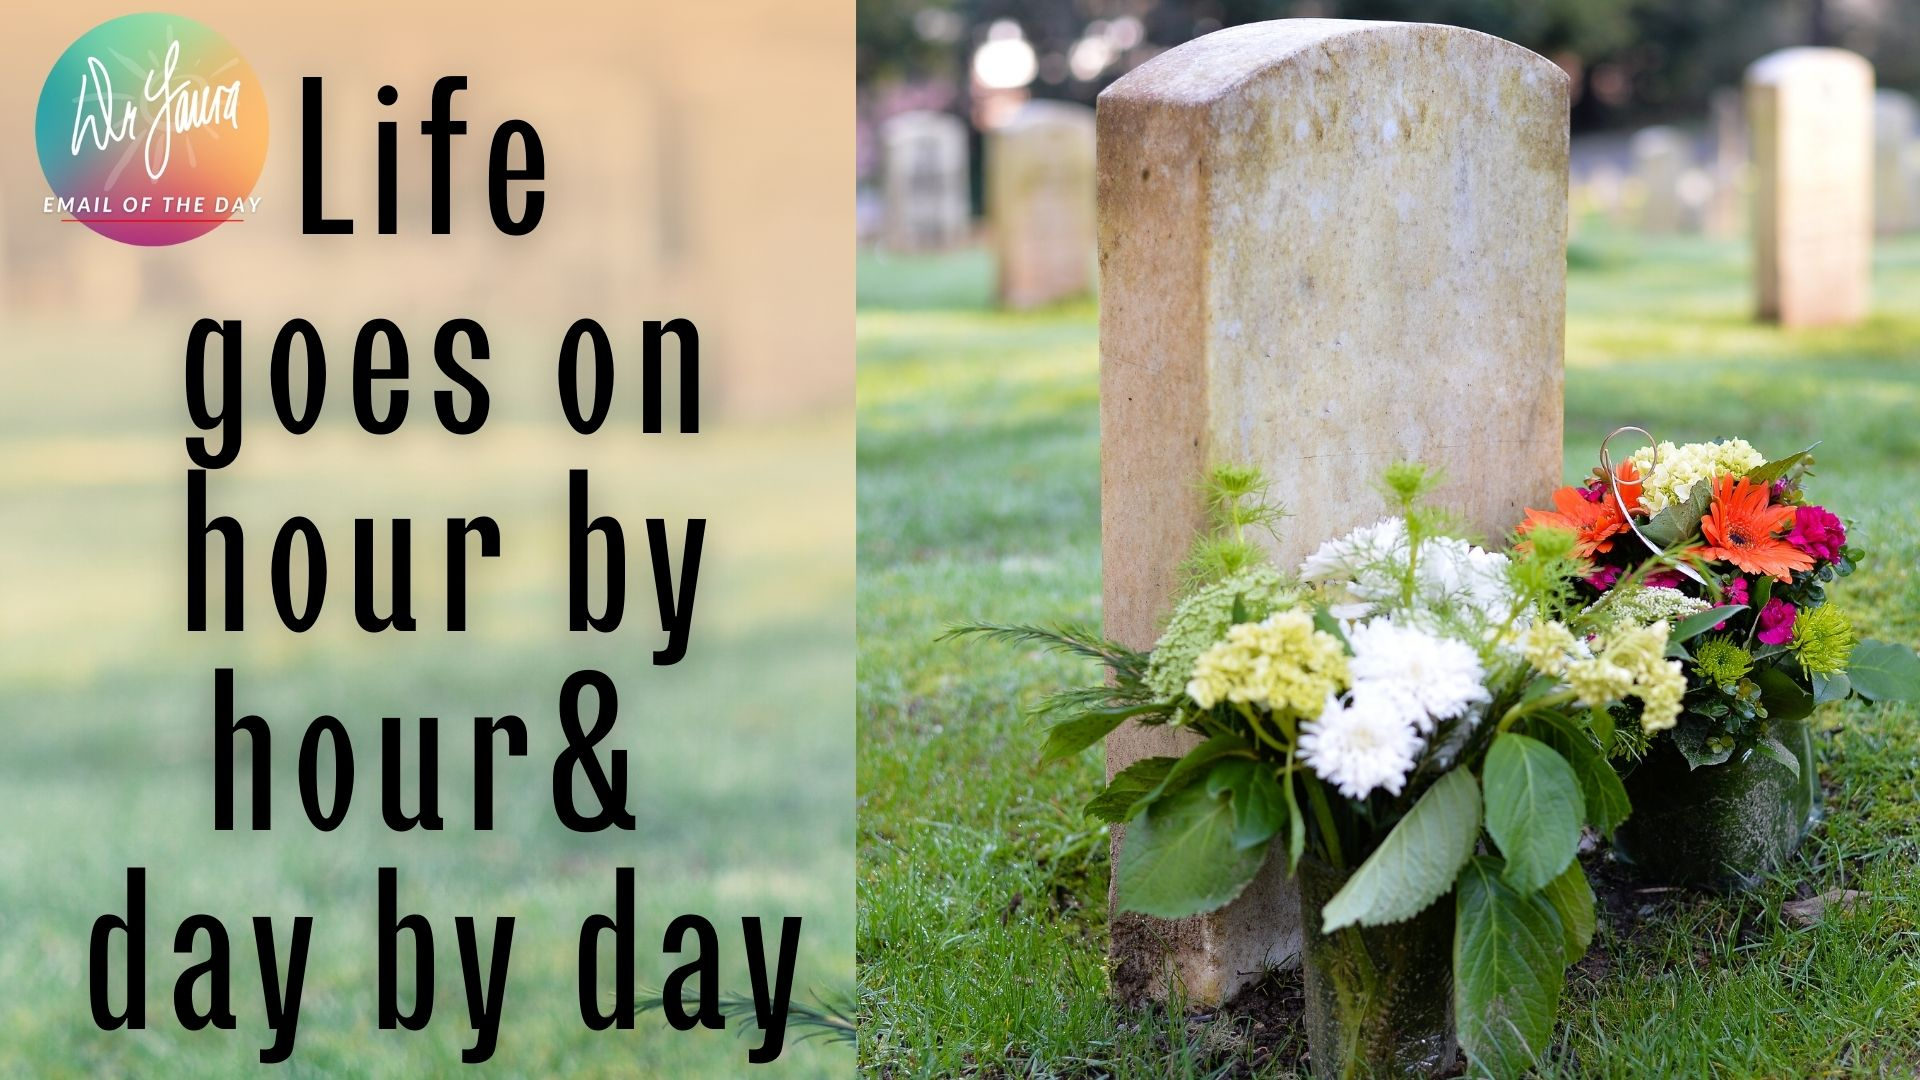 Email of the Day: How To Live When Your Child Has Died